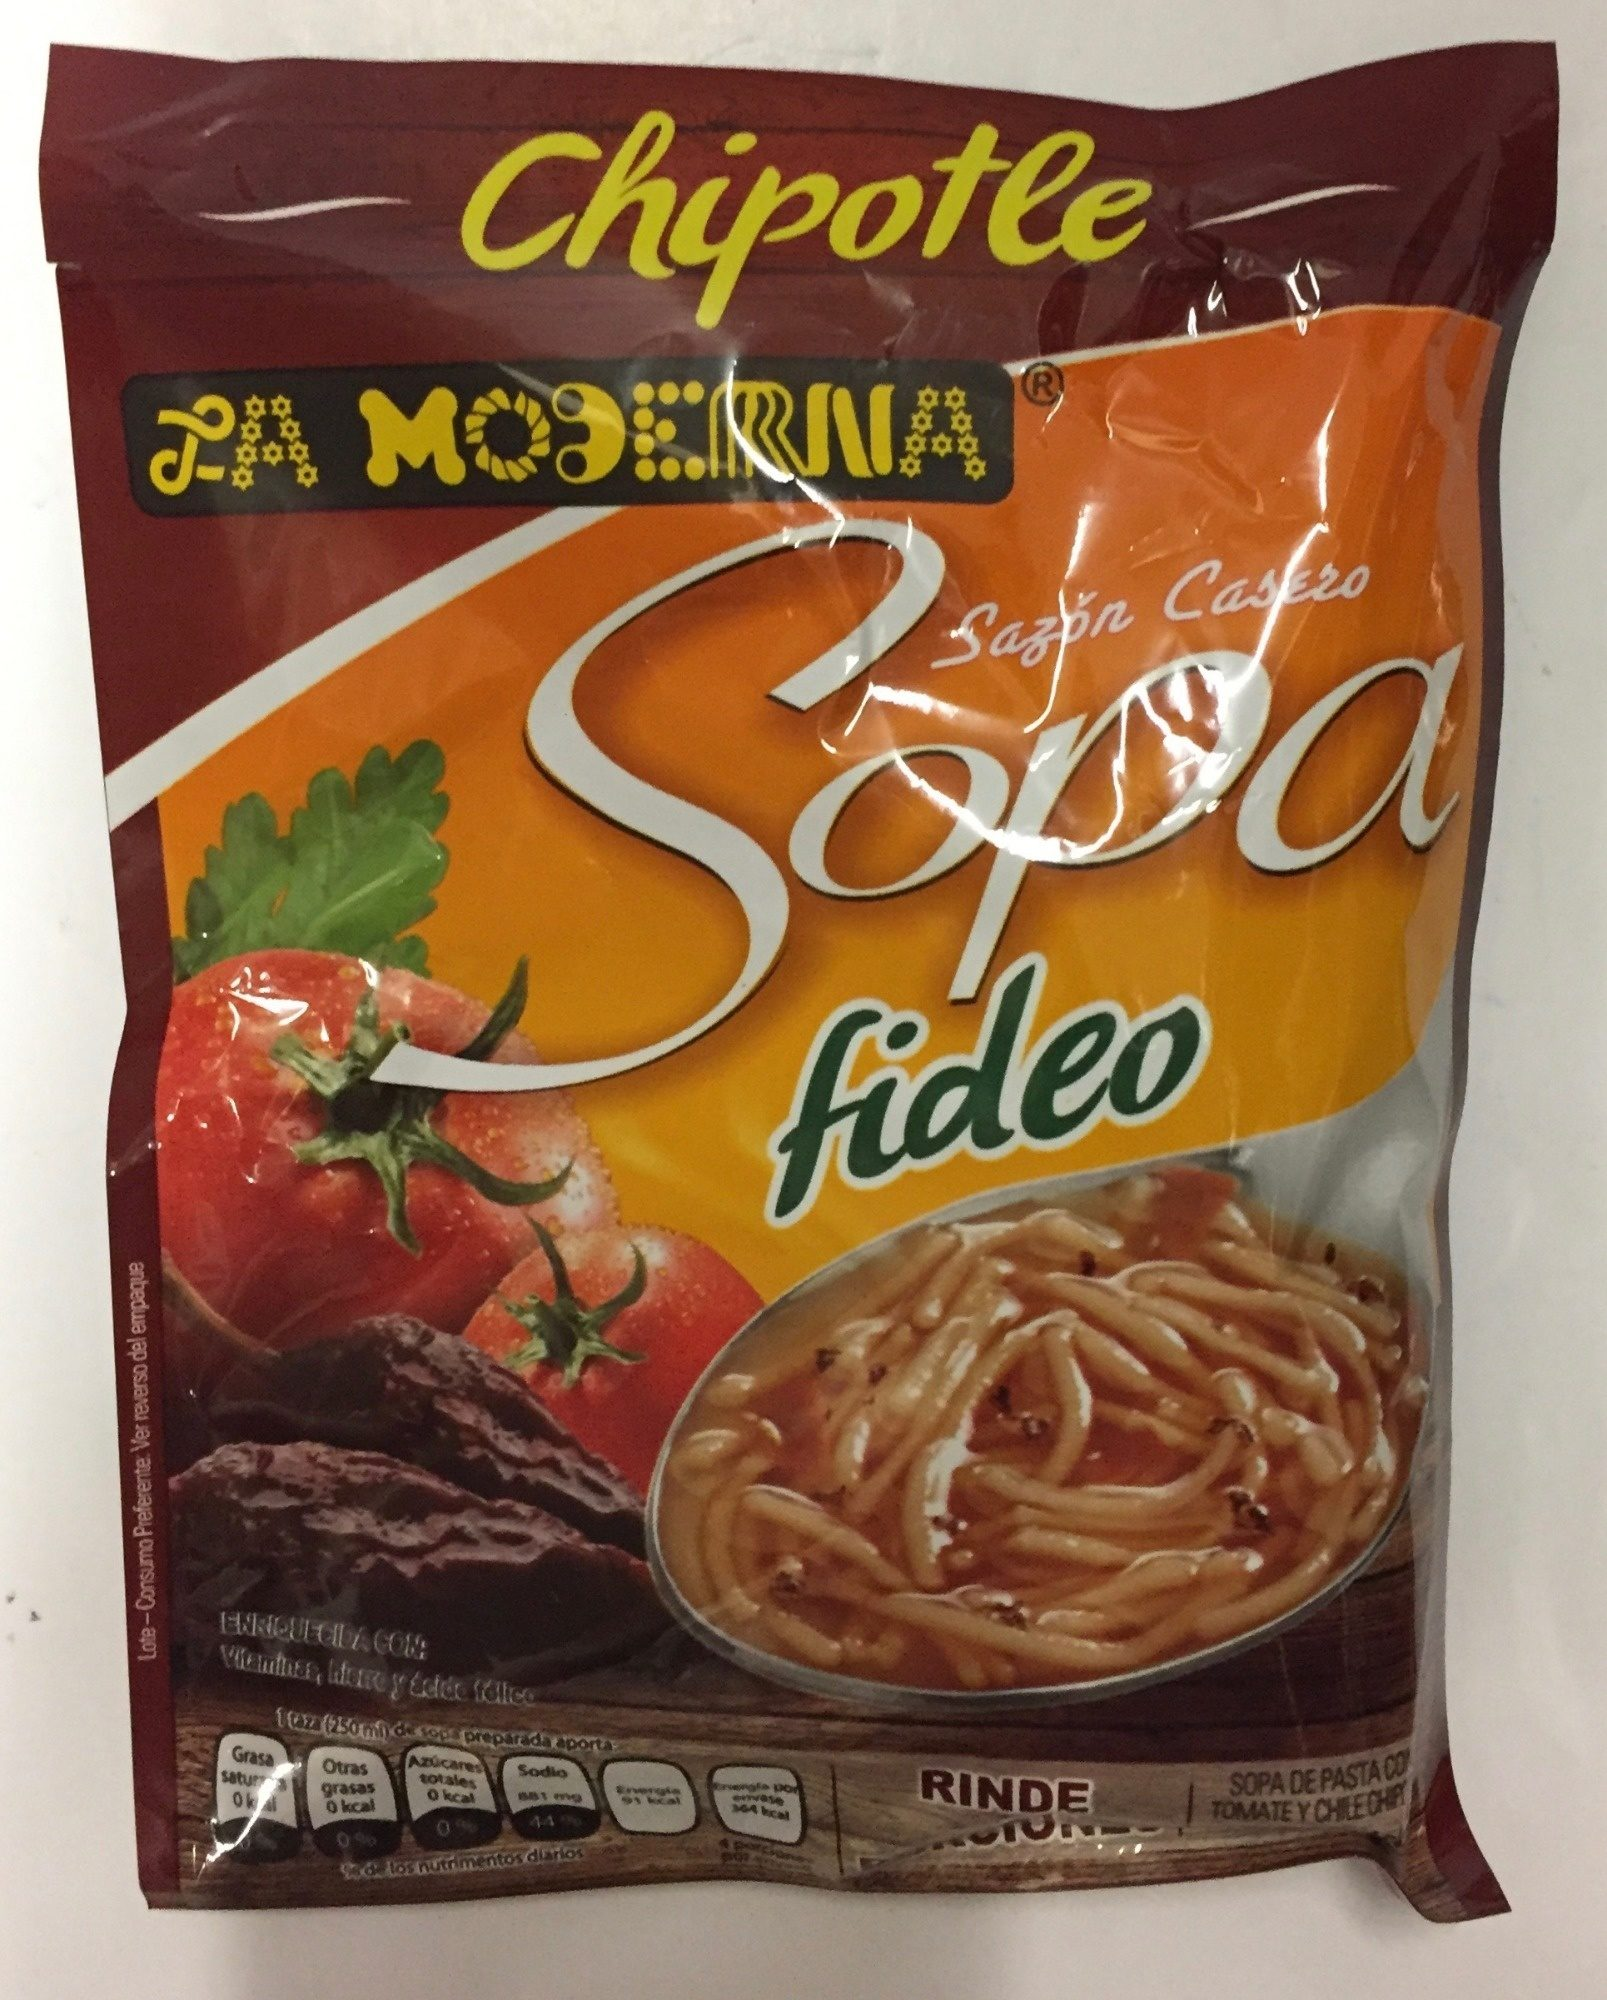 Sopa de fideo chipotle - Product - es